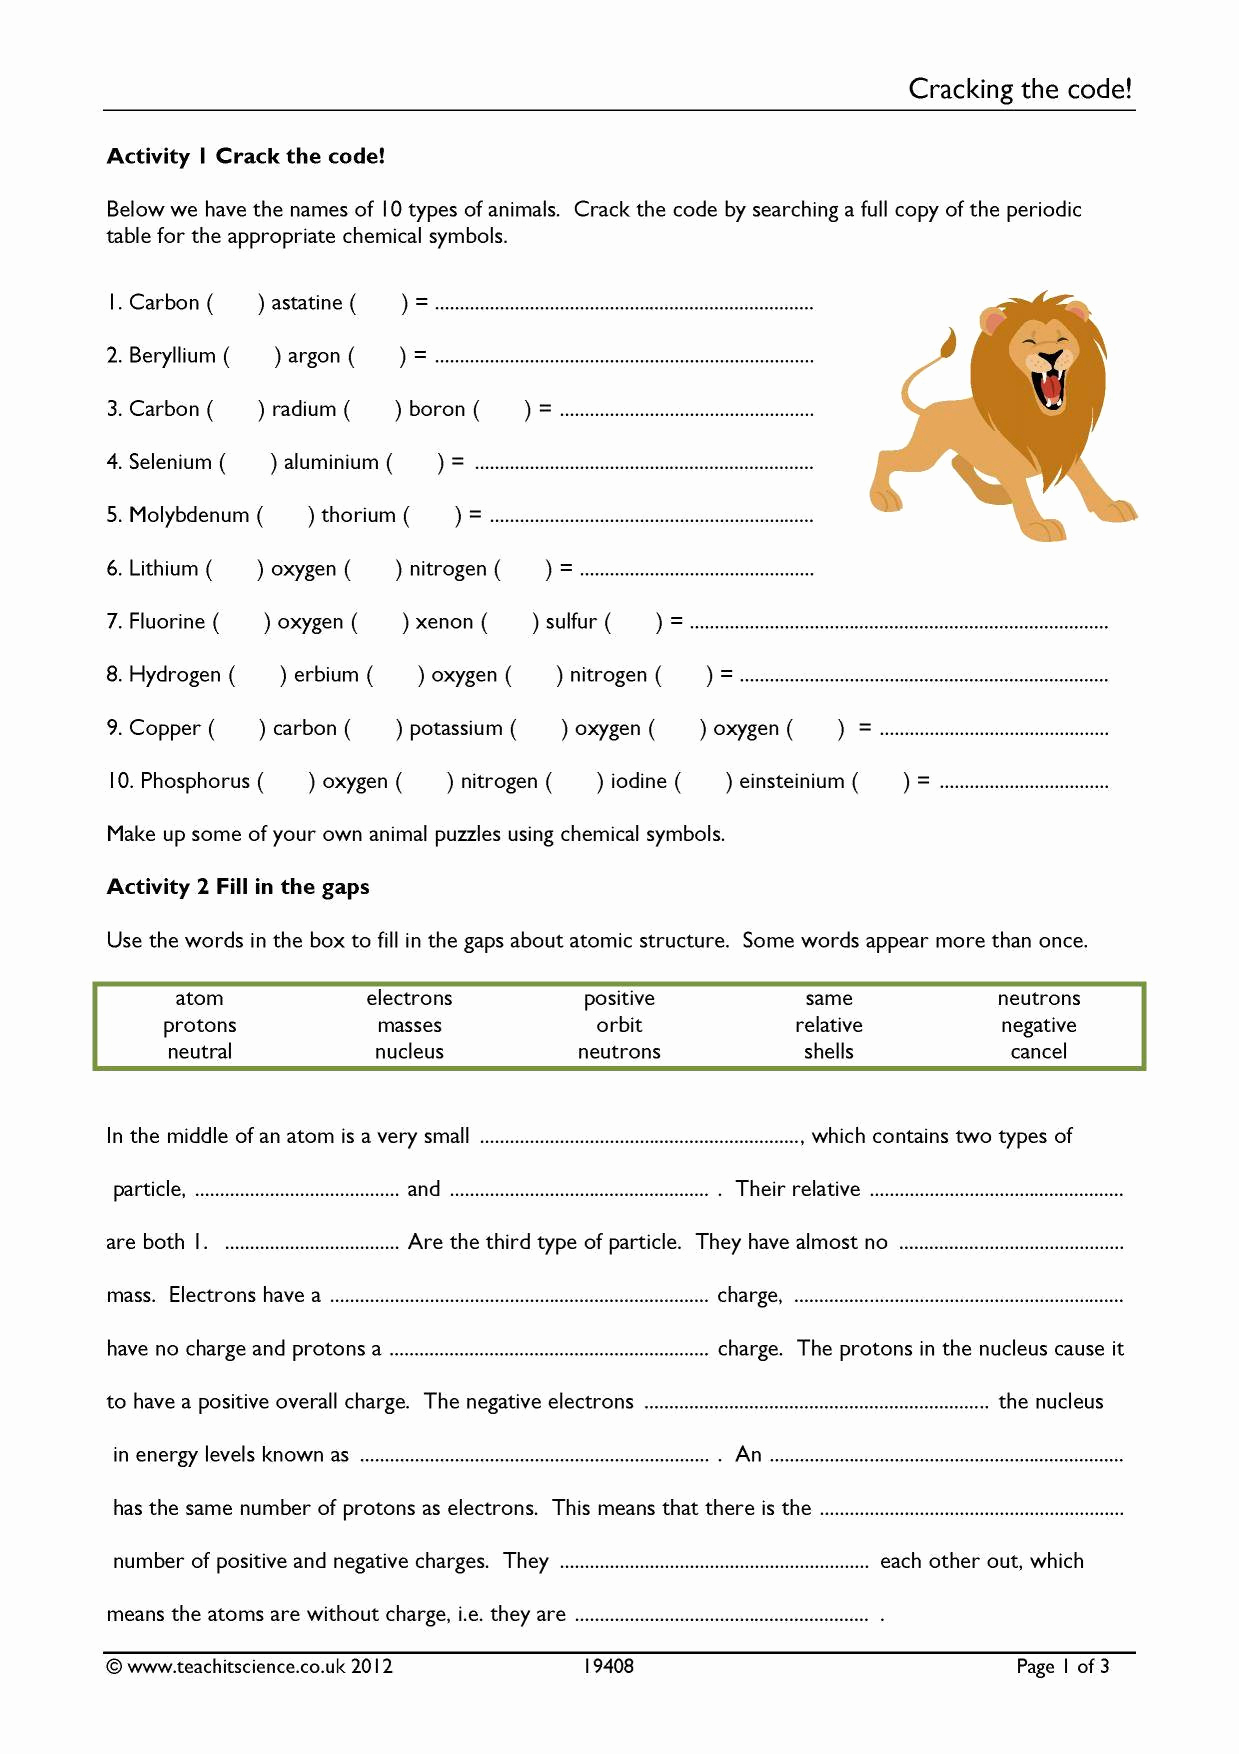 Cracking the Code Math Worksheets Luxury 20 Crack the Code Math Worksheets